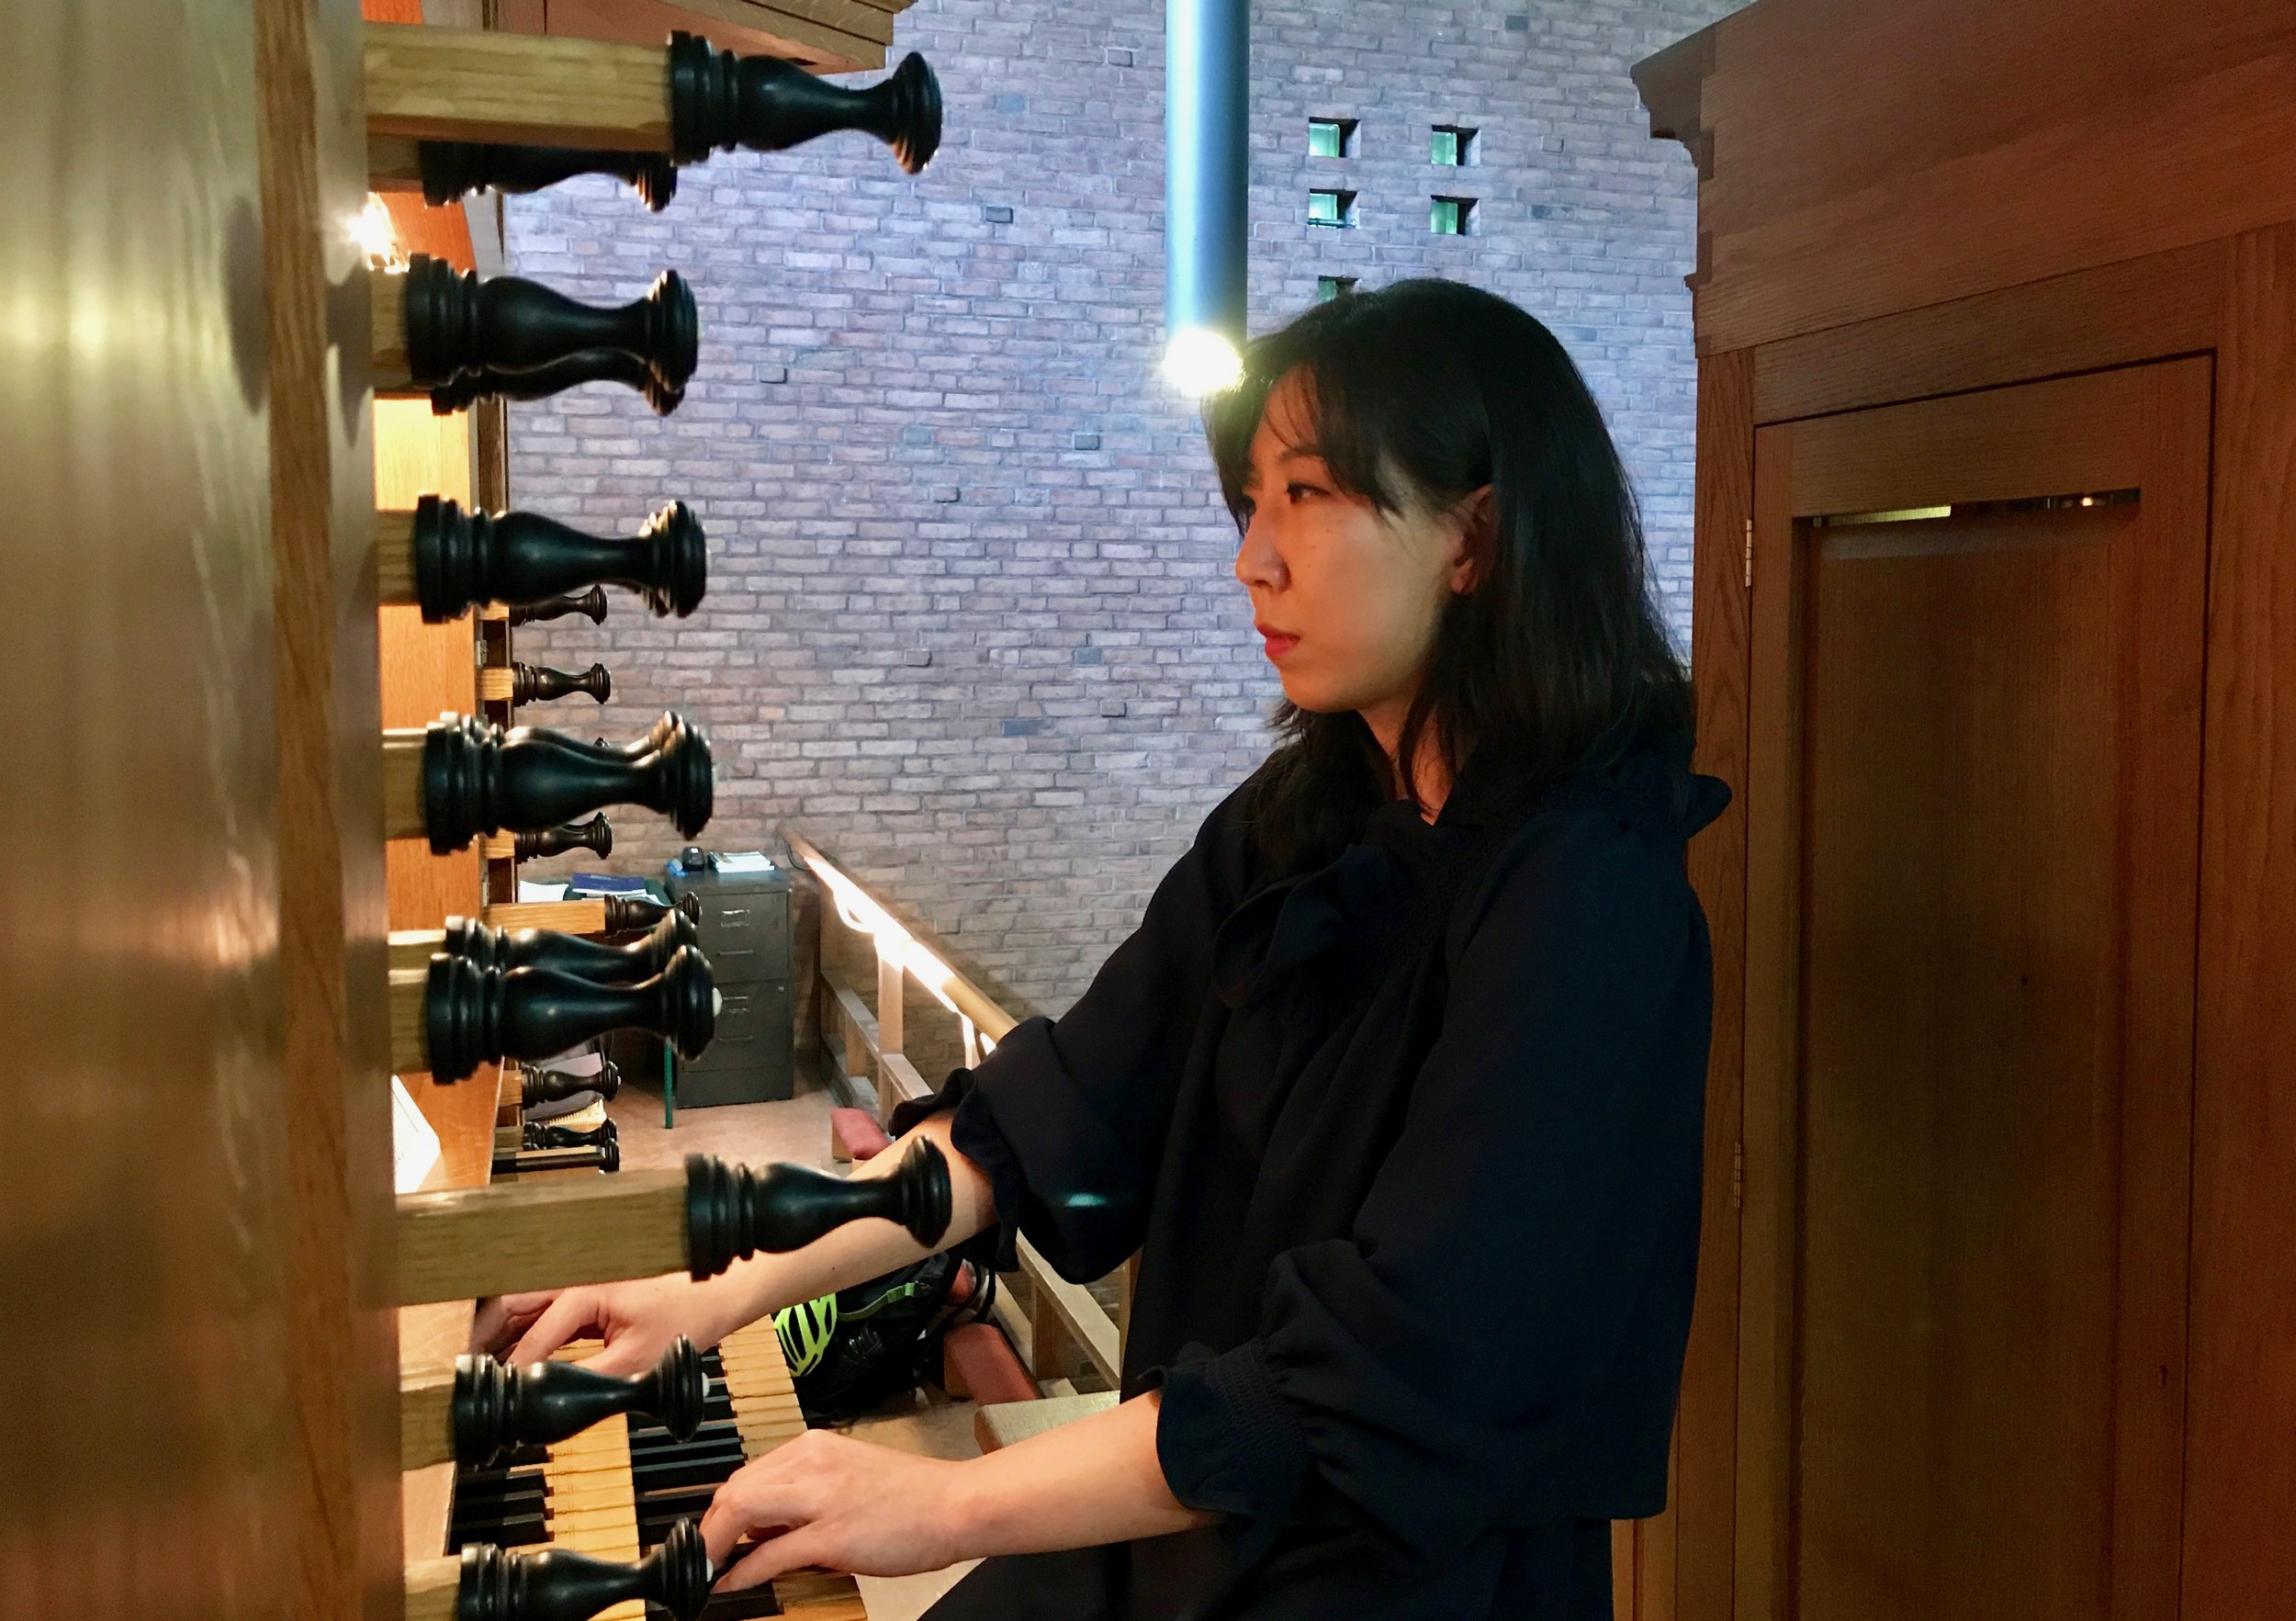 Organist Grace Lee performs at First Lutheran Church. Boston Organ Studio